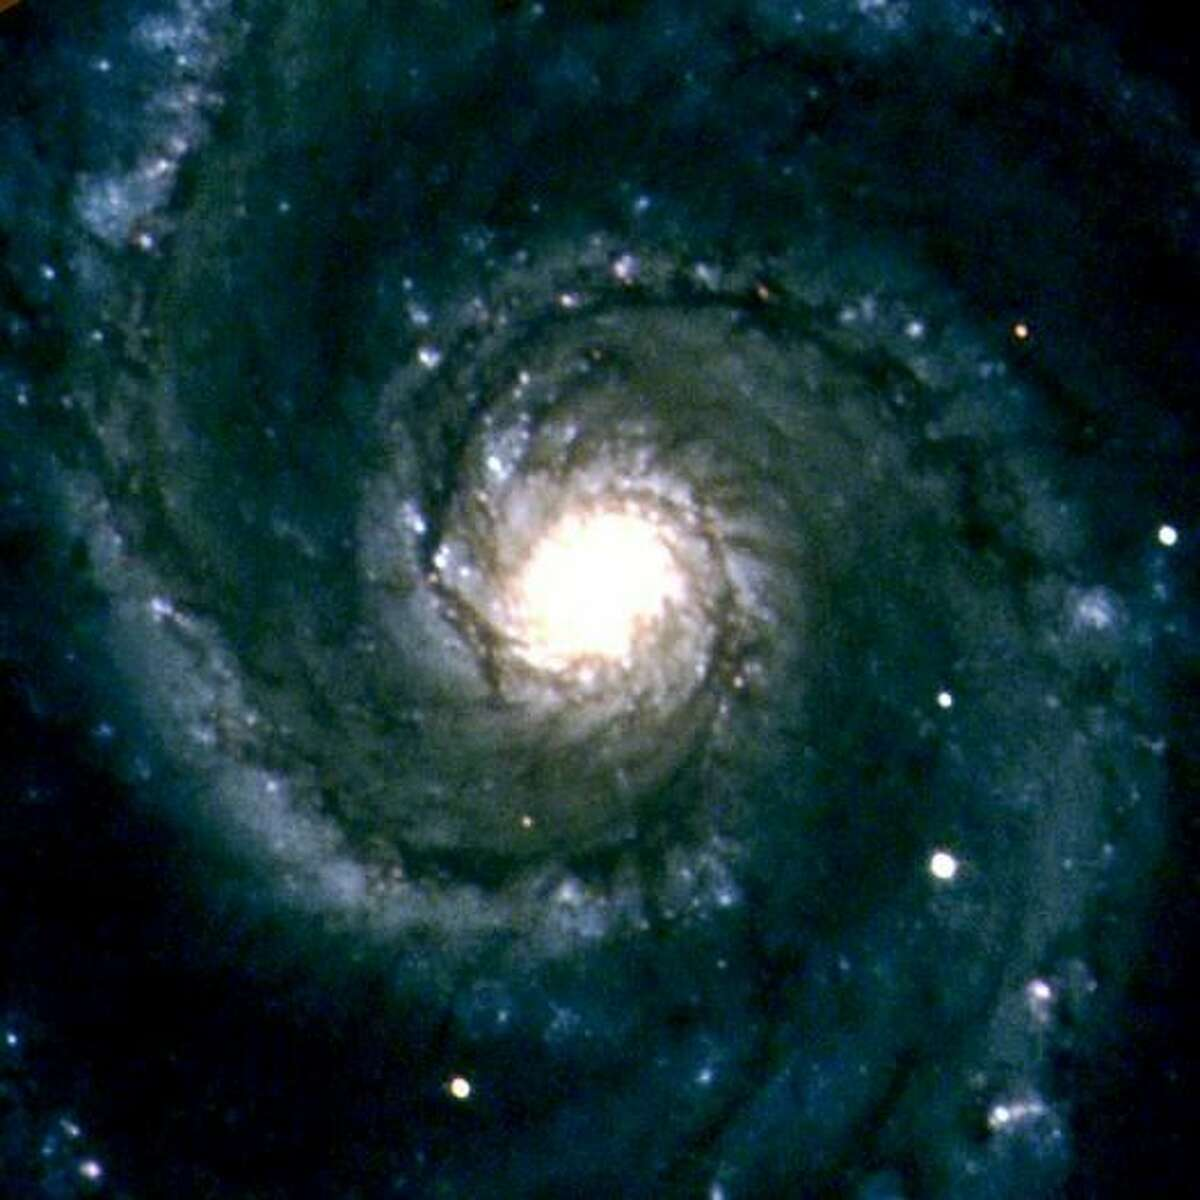 This image of the Whirlpool Galaxy (M51) was taken with the MONET North telescope at McDonald Observatory as part of the observatory's educational outreach program. Credit: K. Fricke/MONET/McDonald Obs. (funded by Astronomie & Internet, a Program of the Alfried Krupp von Bohlen und Halbach Foundation, Essen)